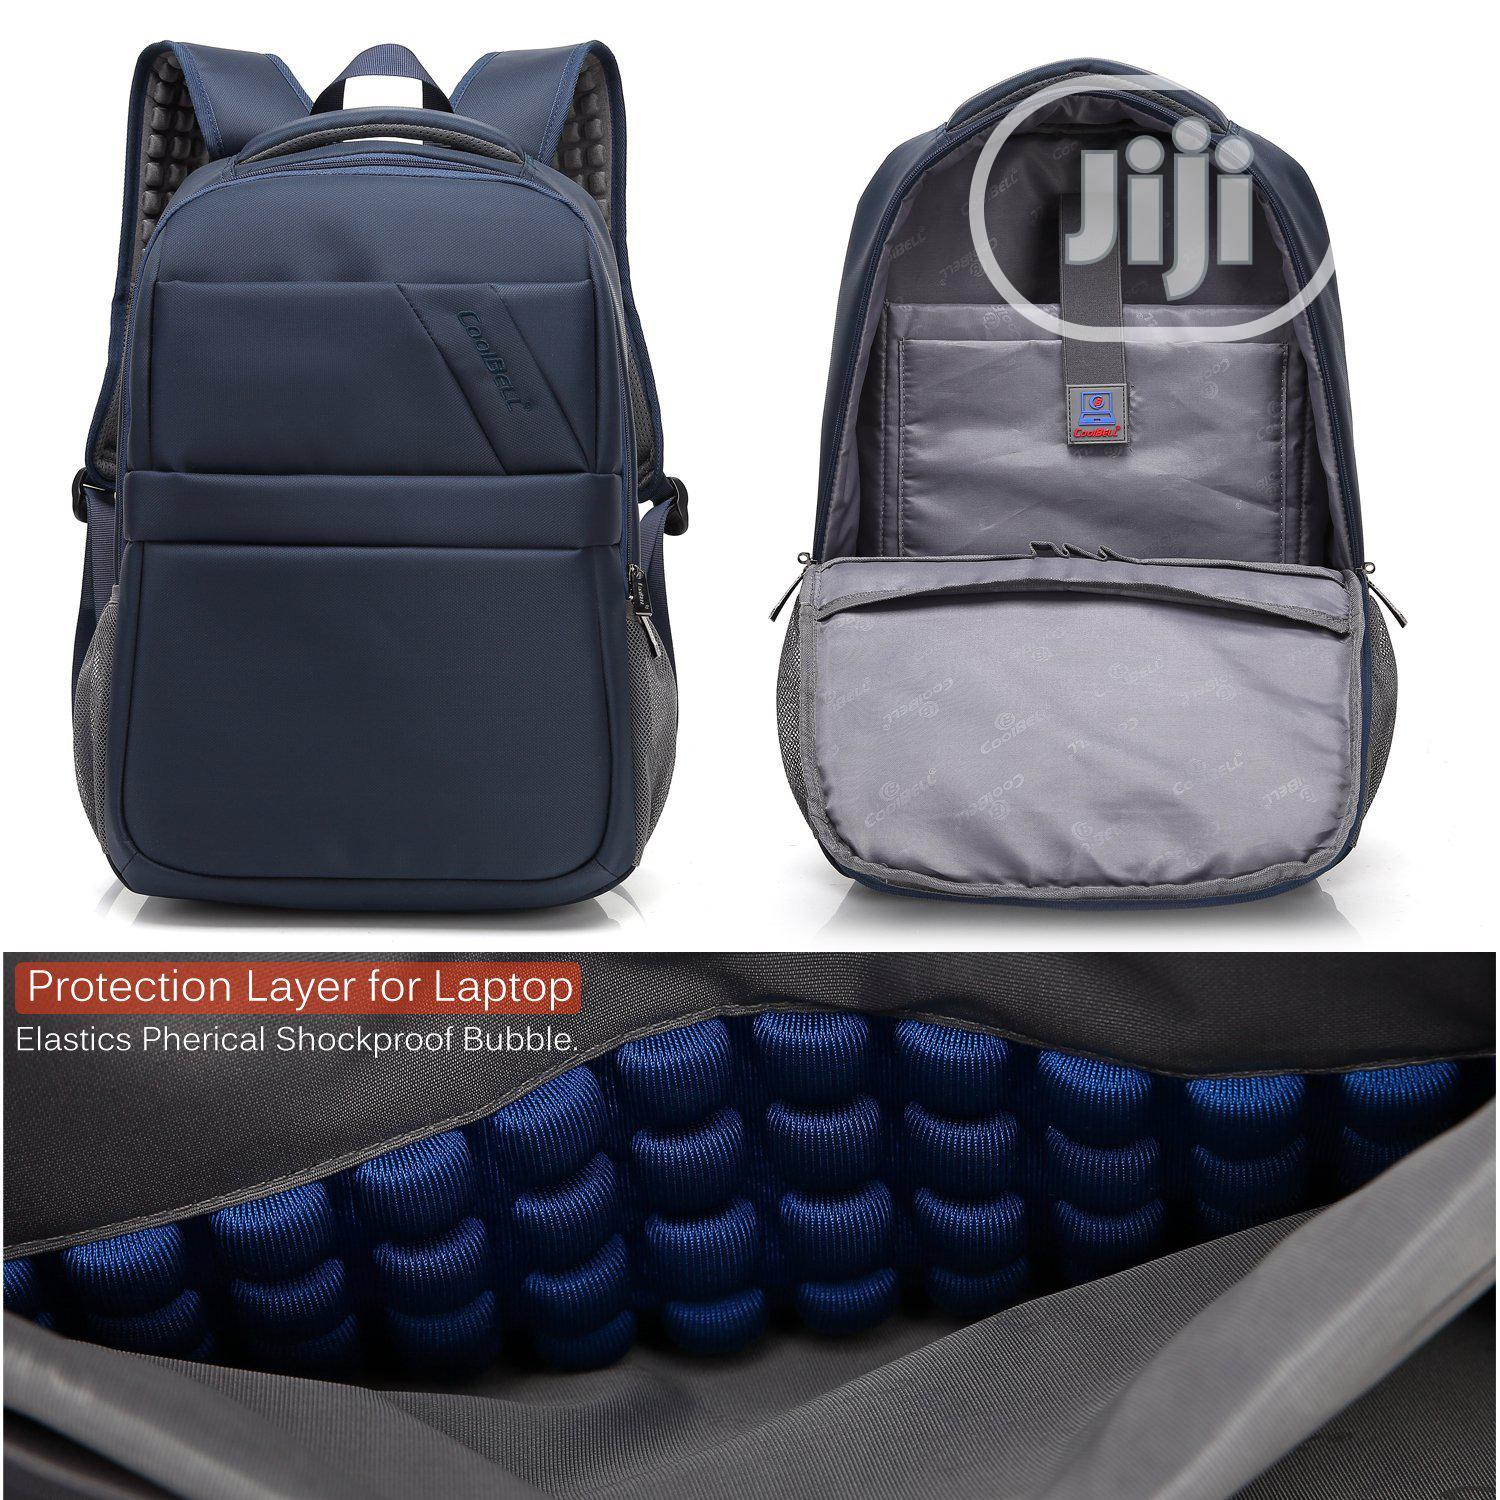 Coolbell Laptop Backpack | Bags for sale in Amuwo-Odofin, Lagos State, Nigeria